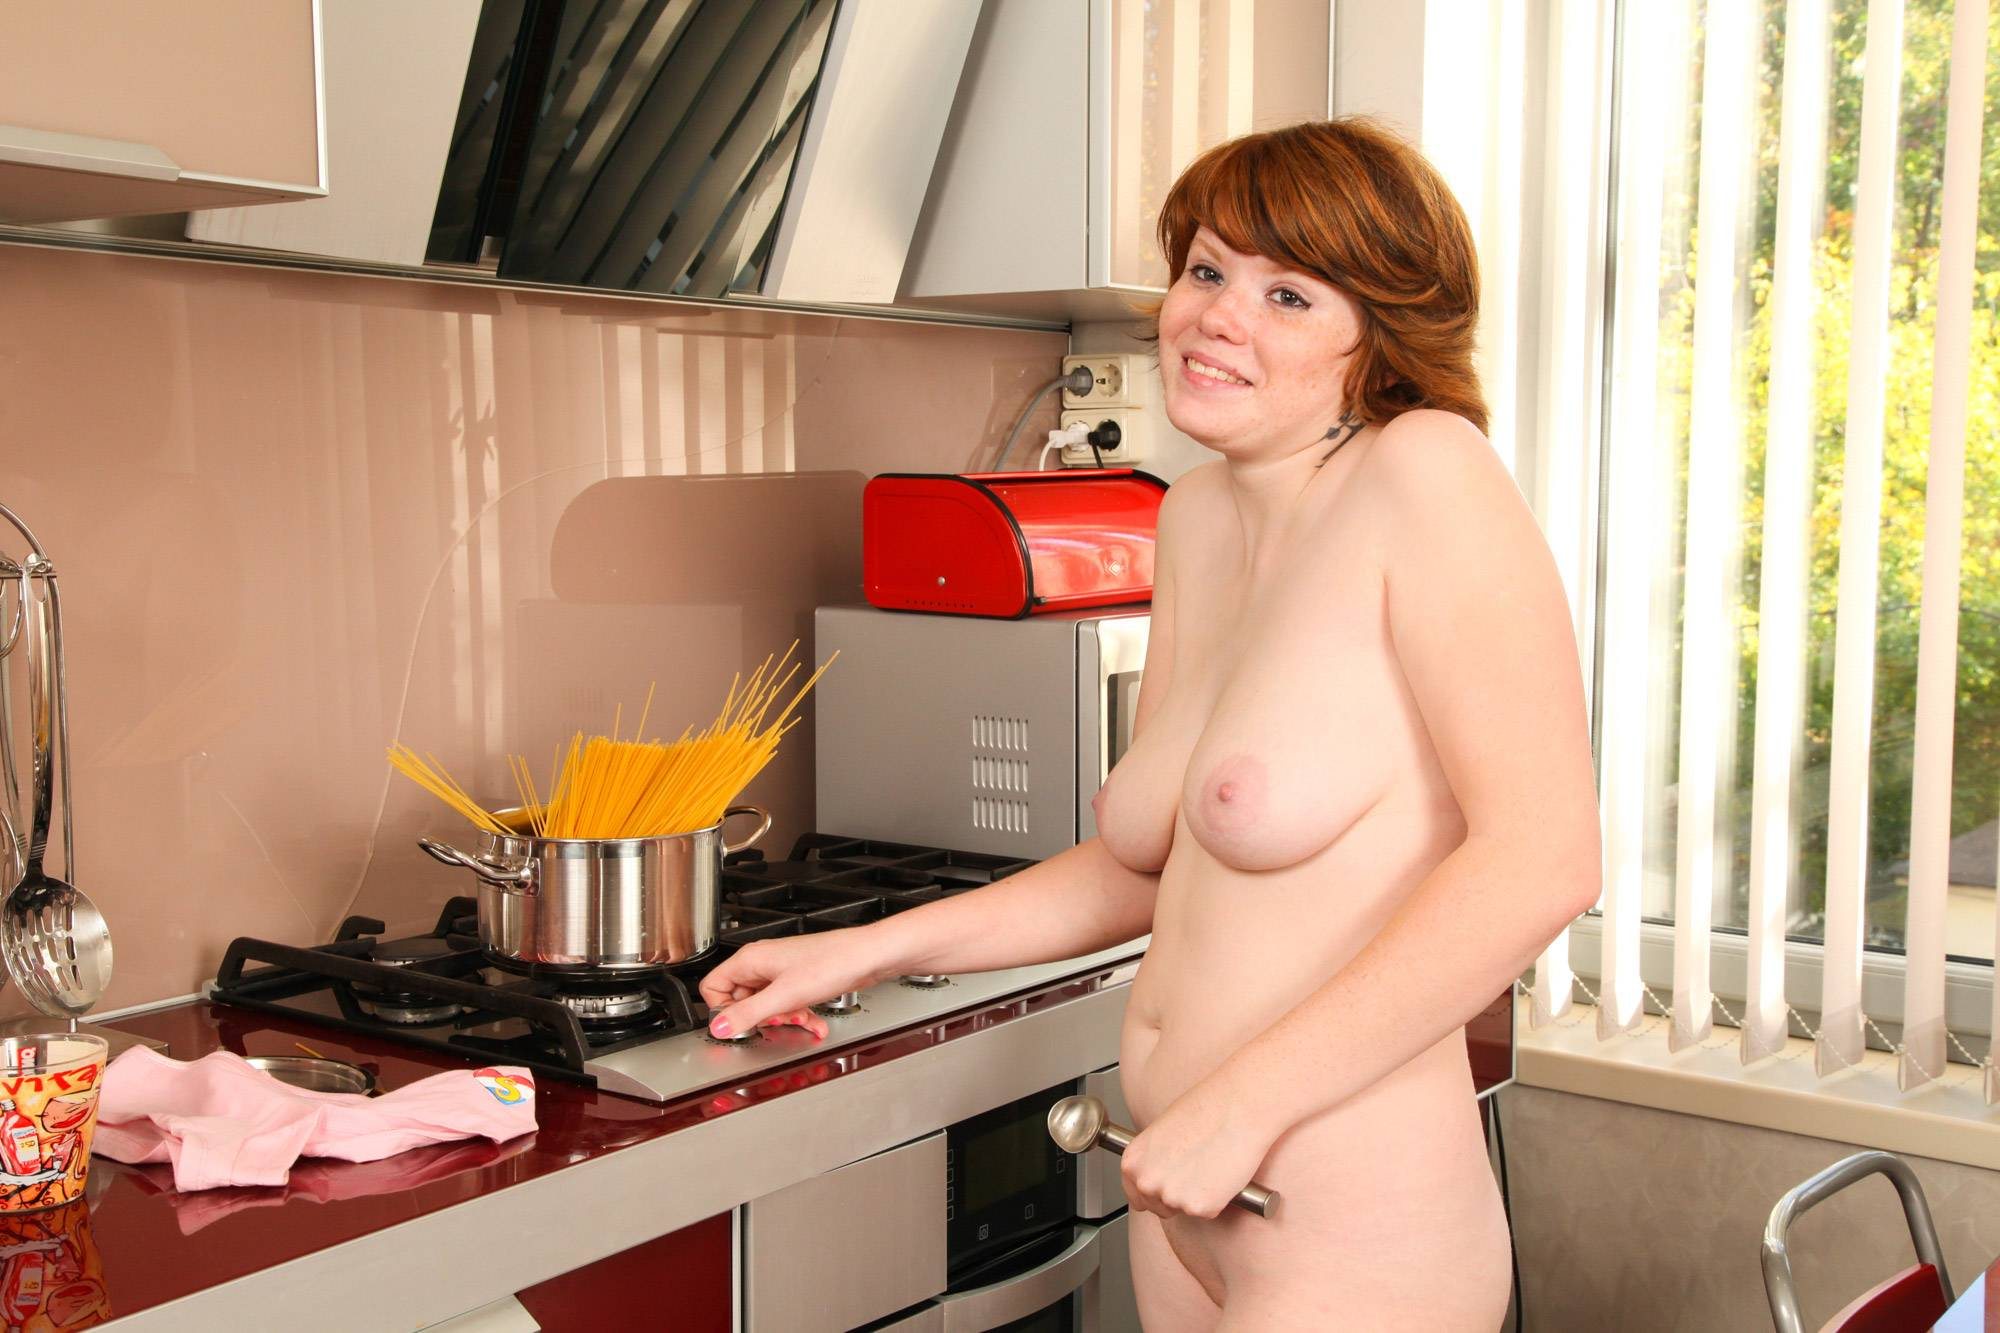 Hot Women Naked Making Supper